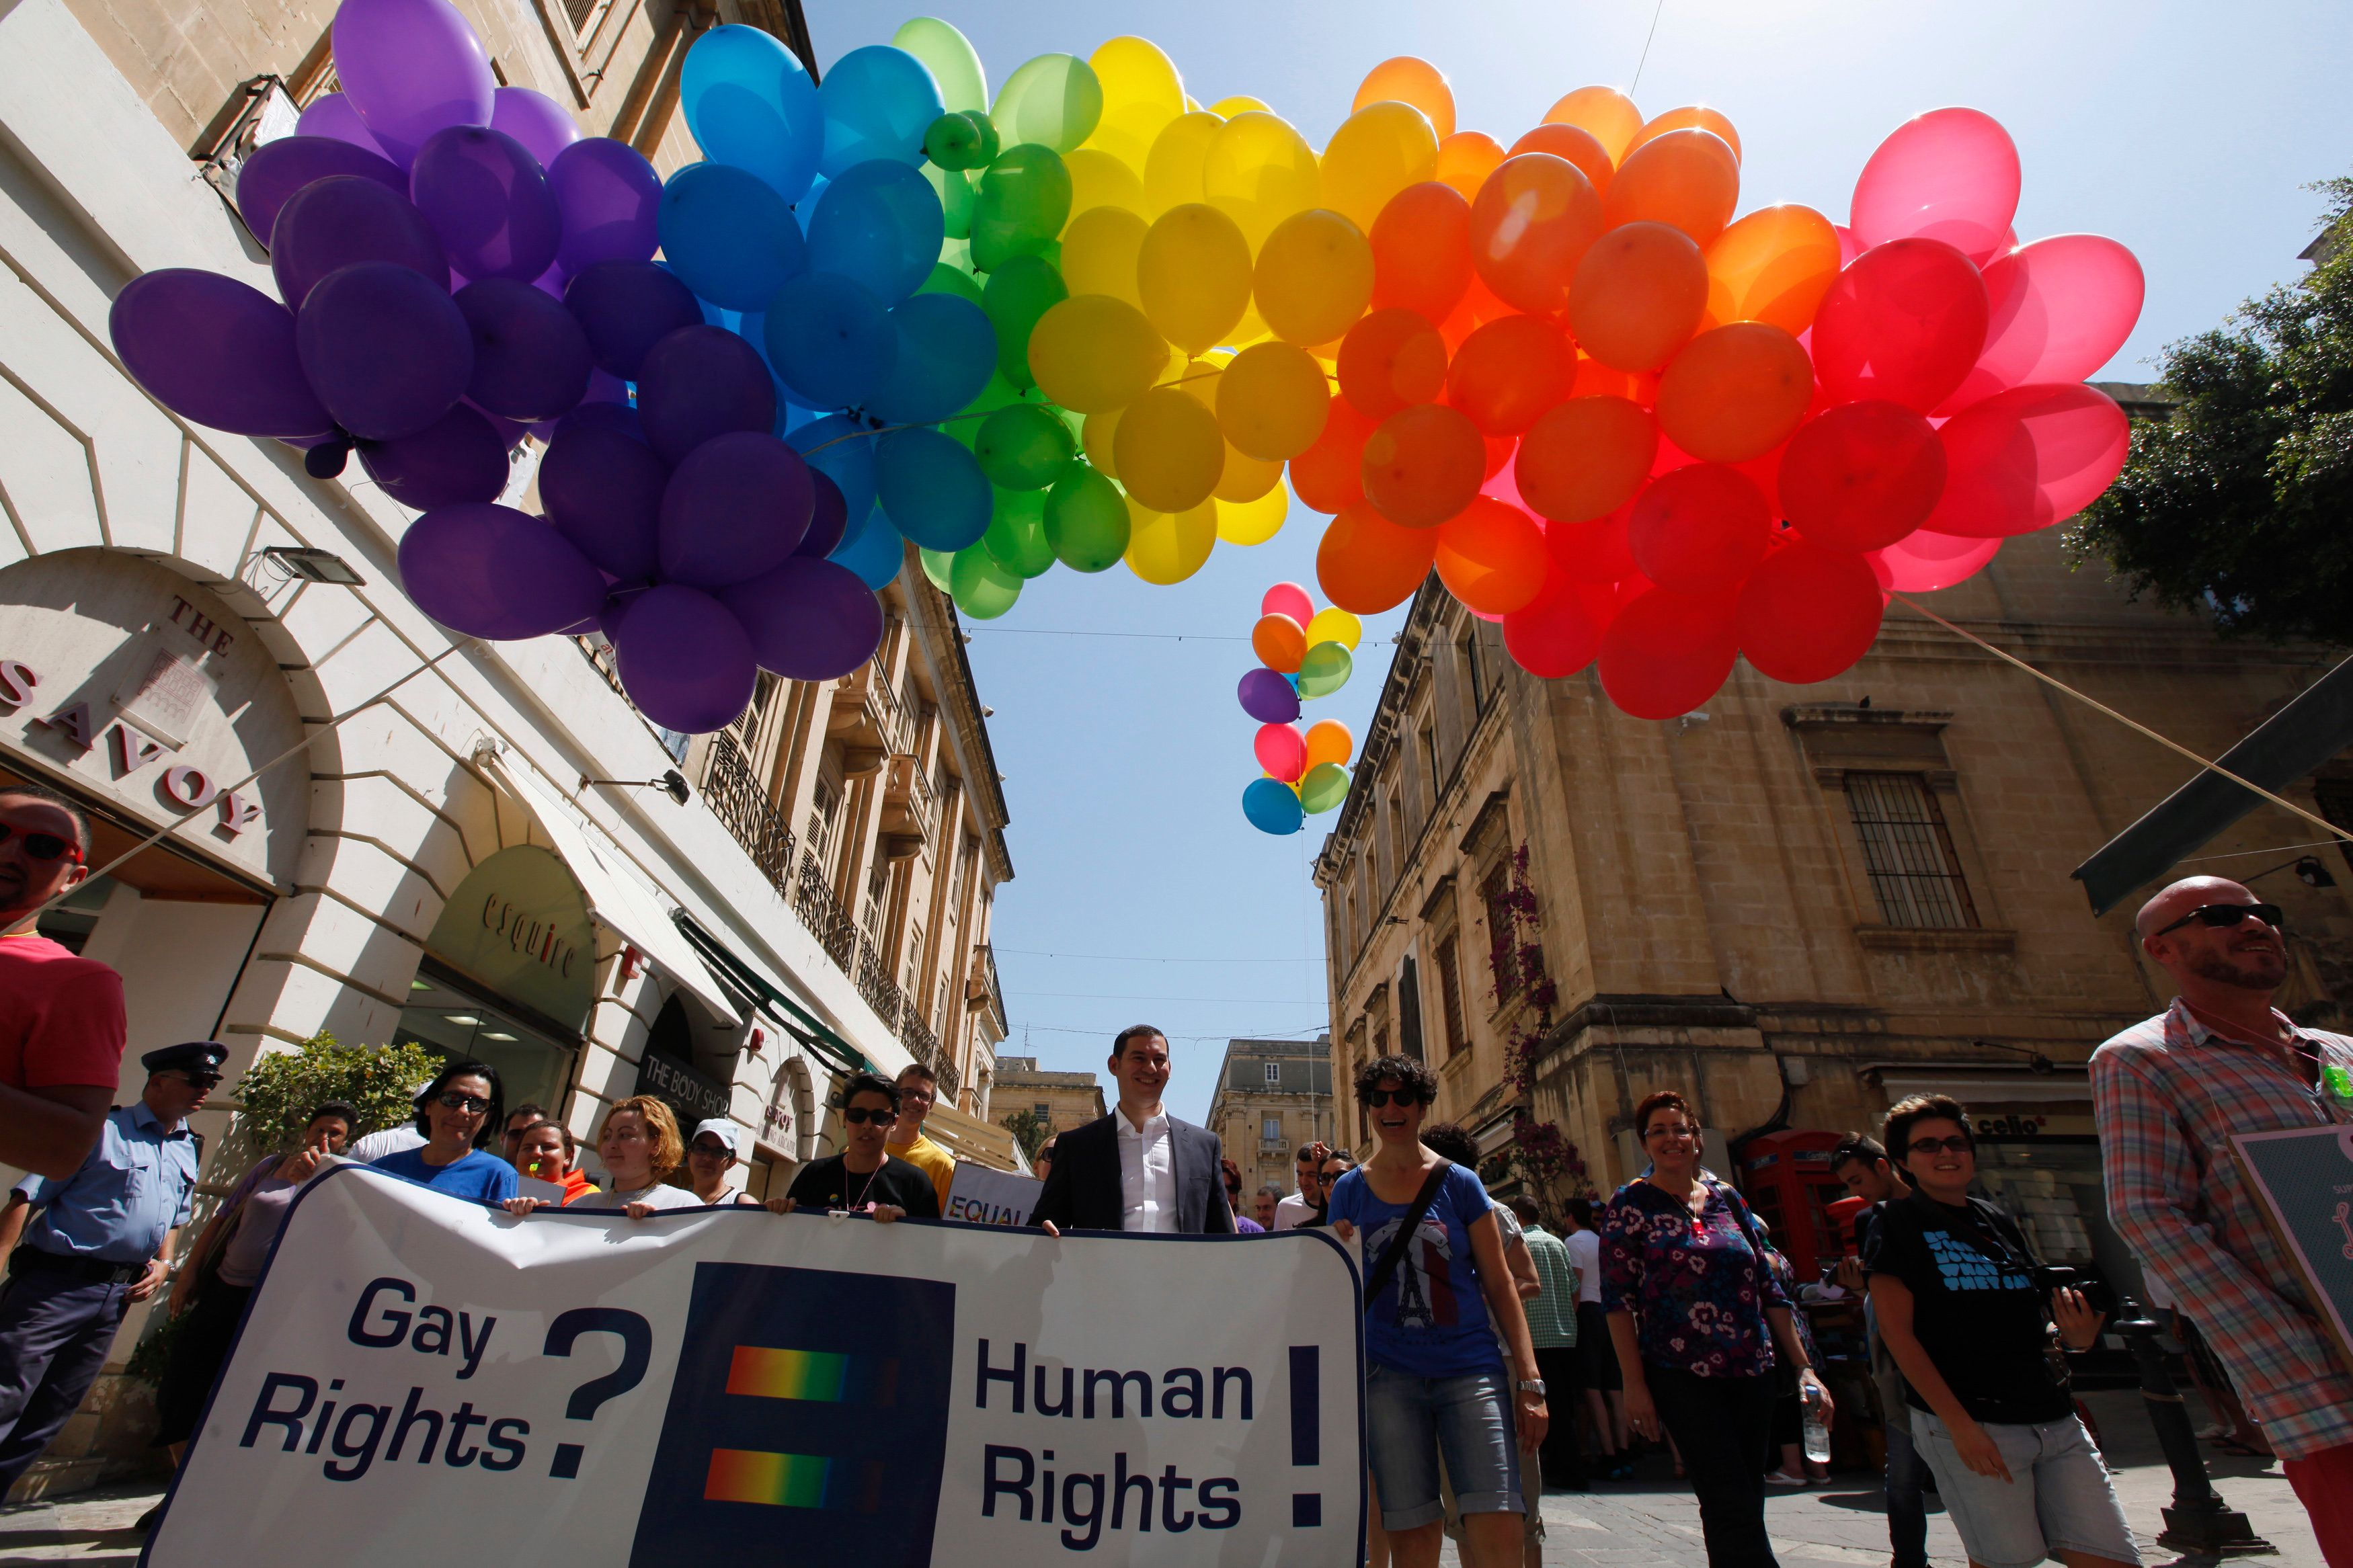 A gay pride parade in Valletta, the capital of Malta, in